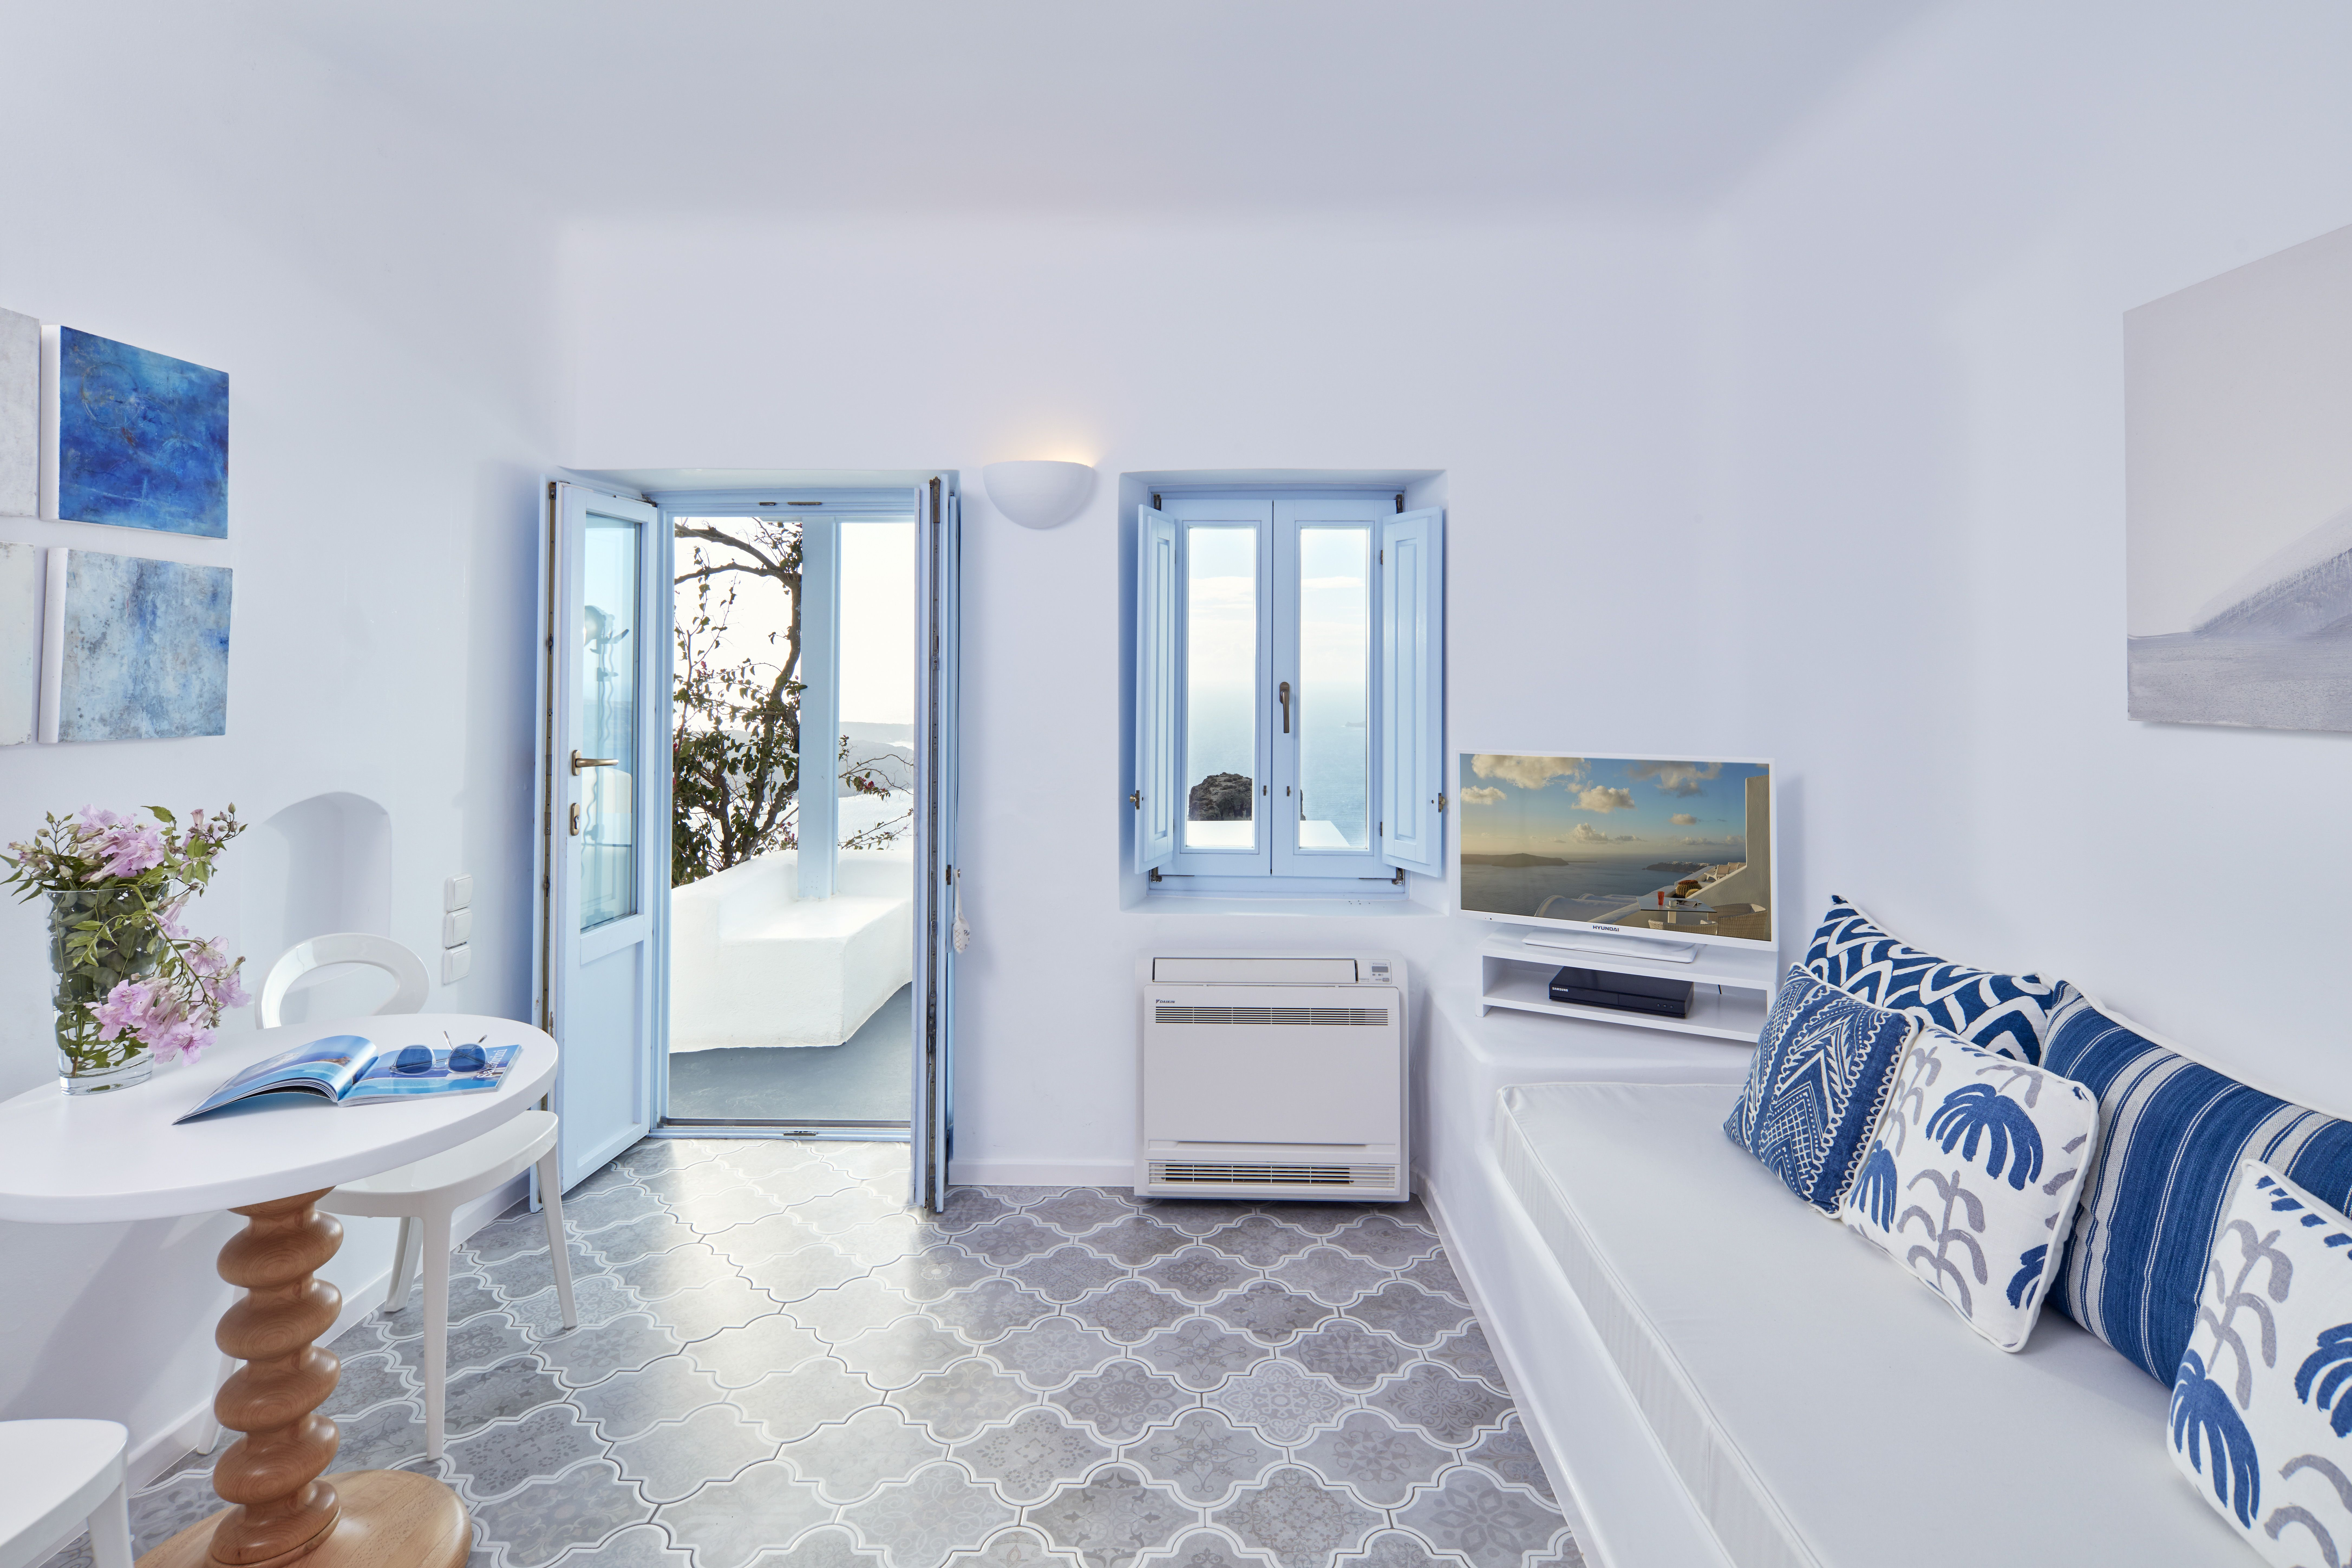 Greek Cycladic Architecture Tradition Hotel Design Project Blue White Colours Archilovers Interior Design Living Room Decoration Fabrics Patterns